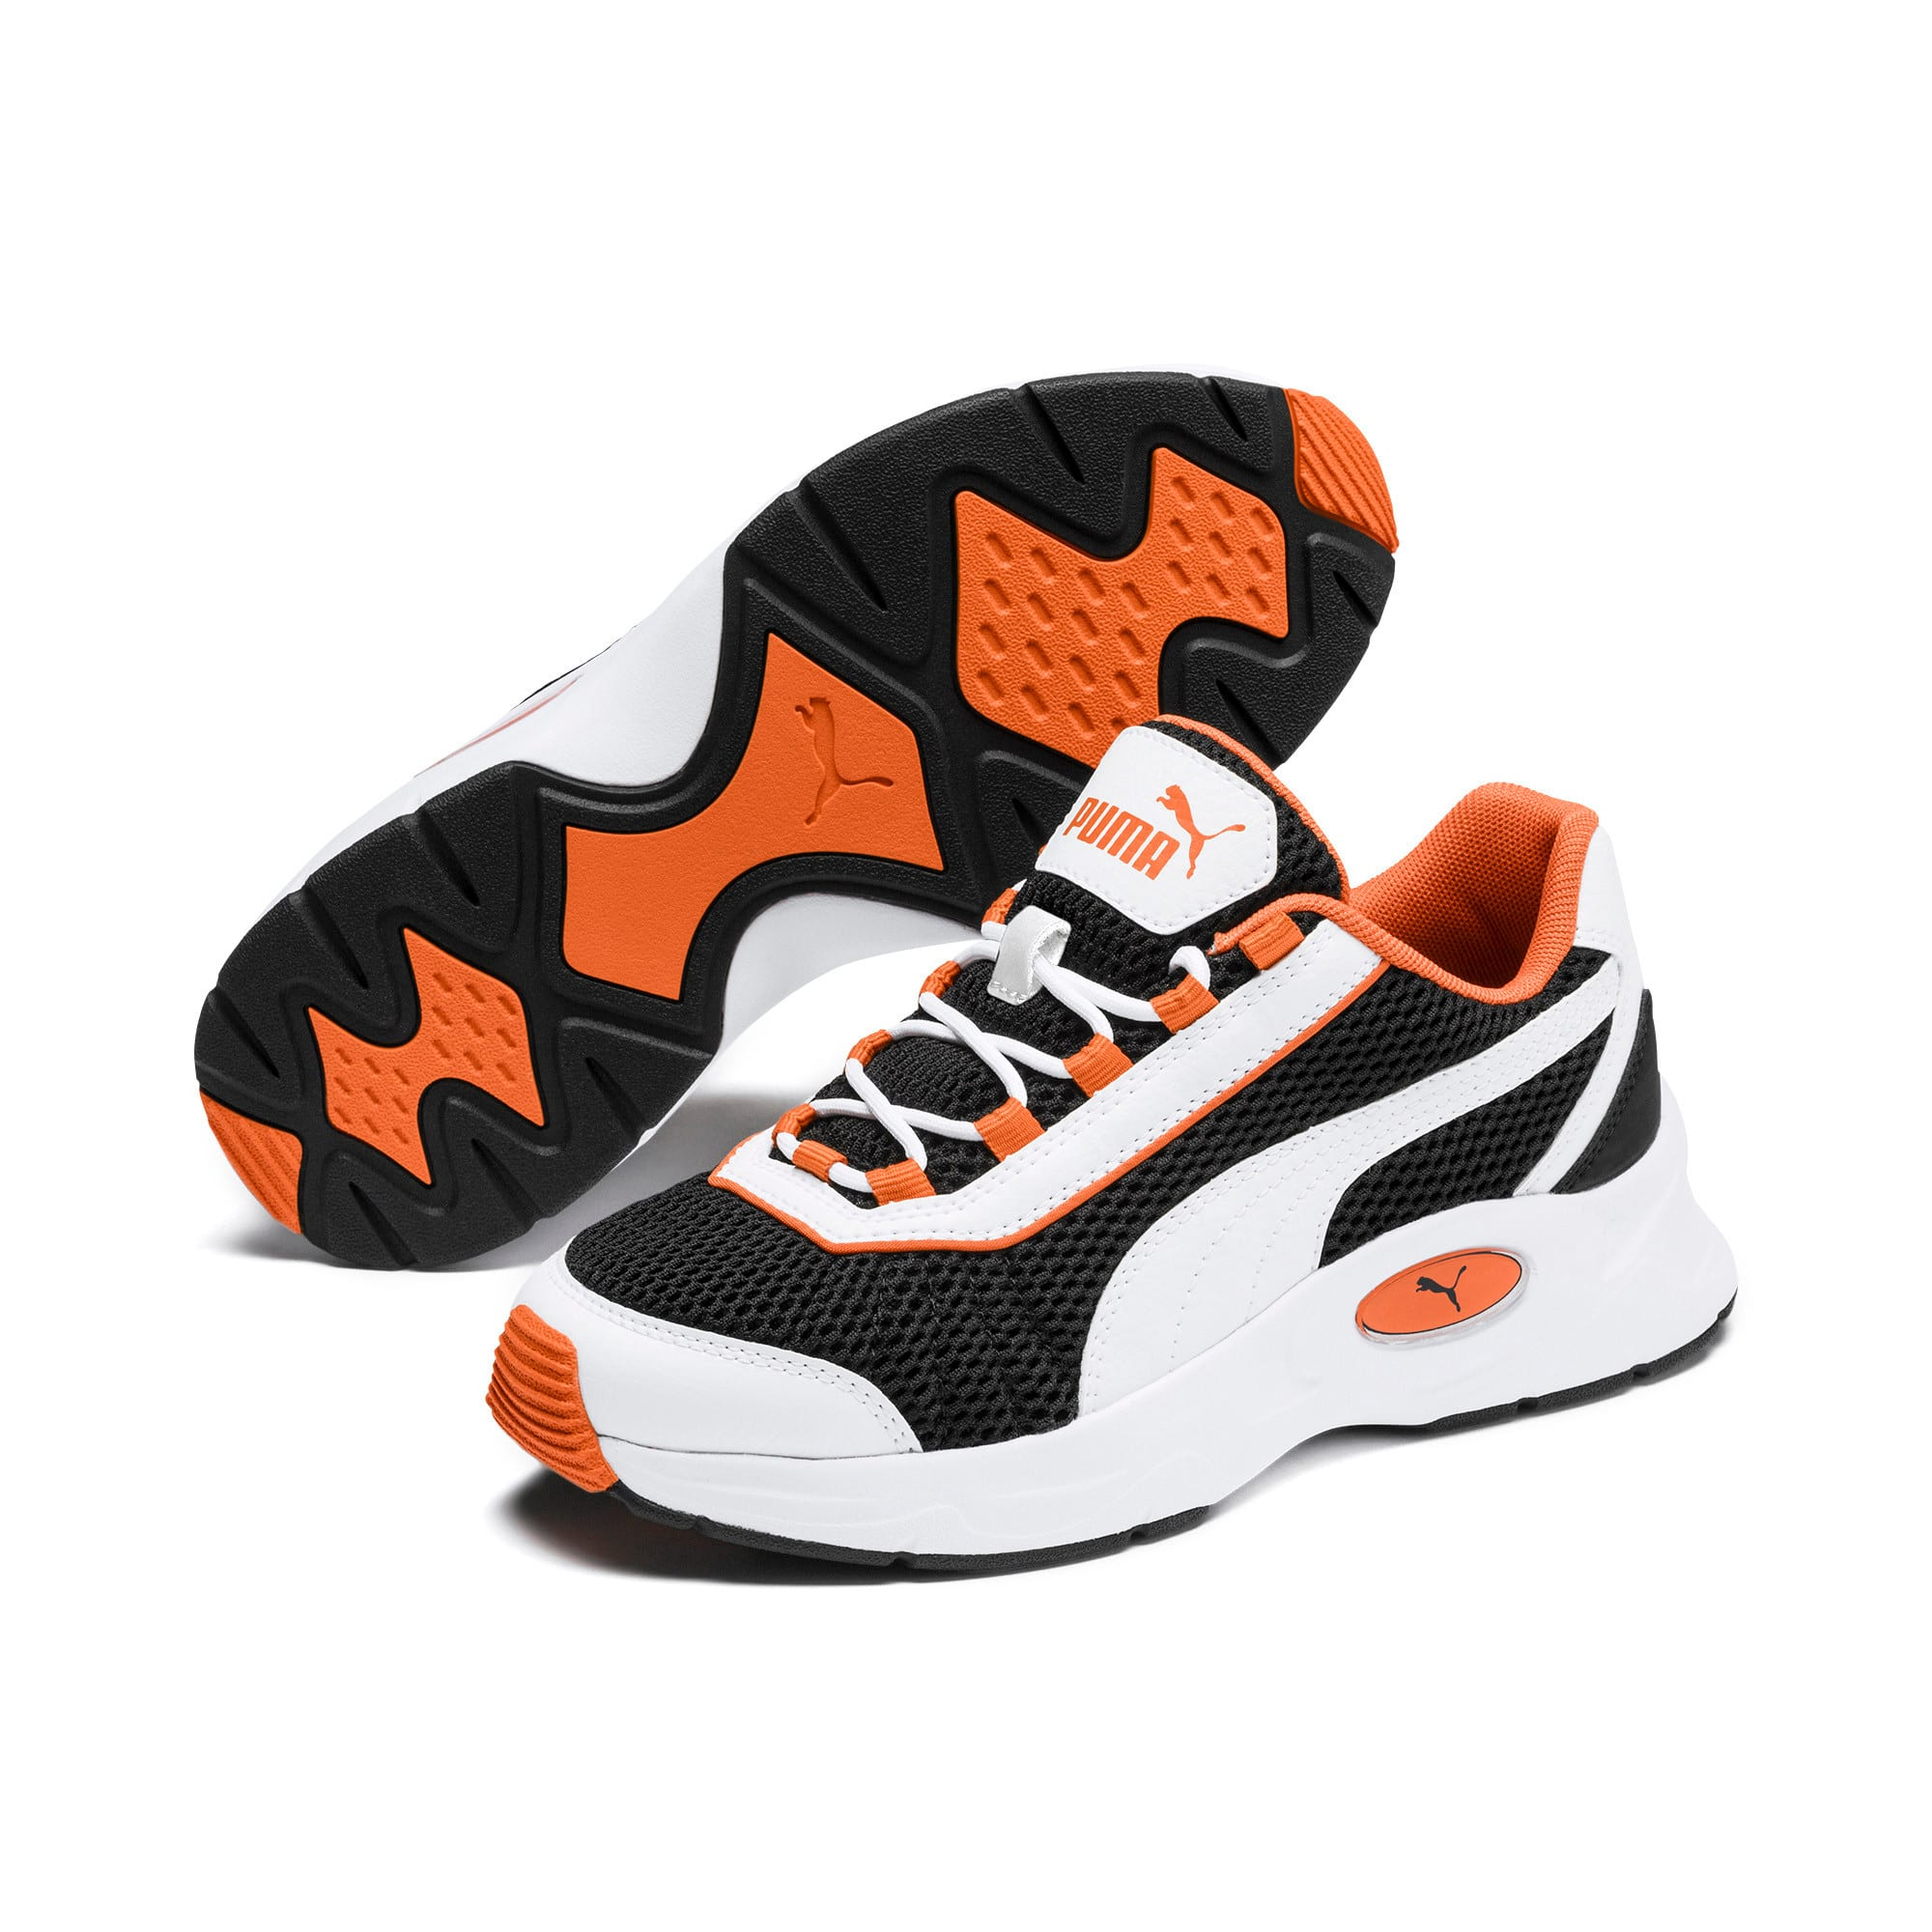 Thumbnail 2 of Nucleus Youth Trainers, Puma White-Jaffa Orange, medium